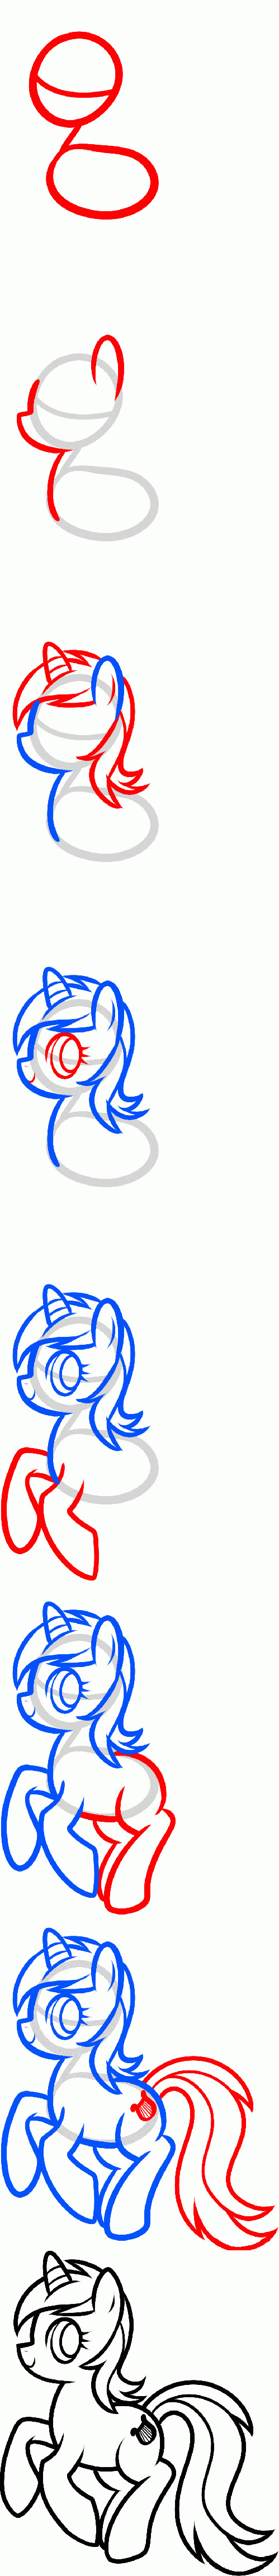 How to draw a pony from the cartoon Friendship is a miracle